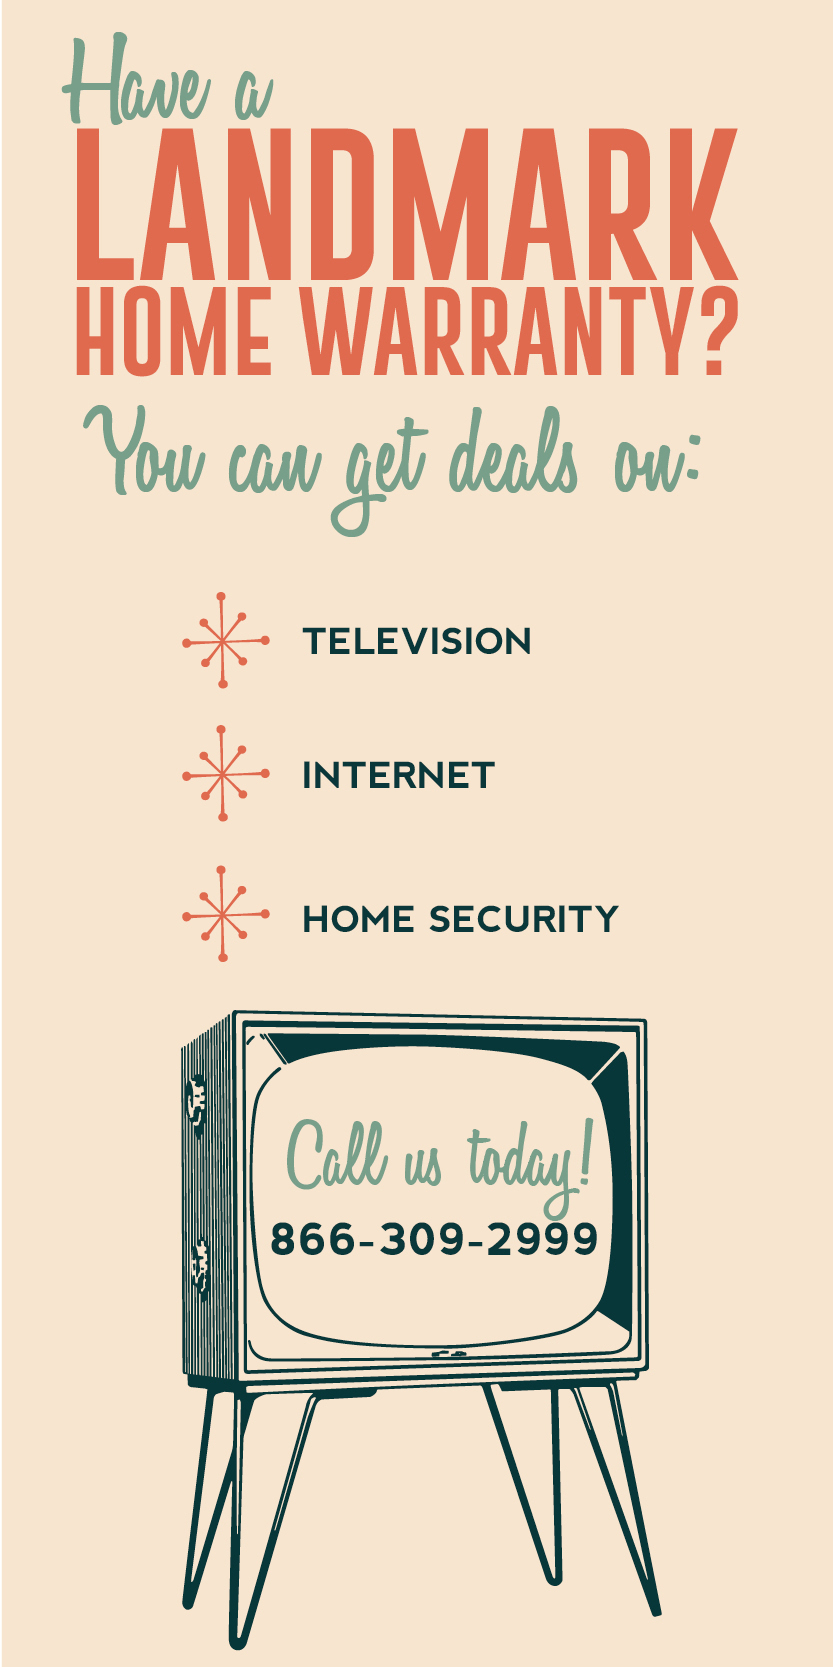 Home warranties can save you money on different home services like internet, television and home security systems.